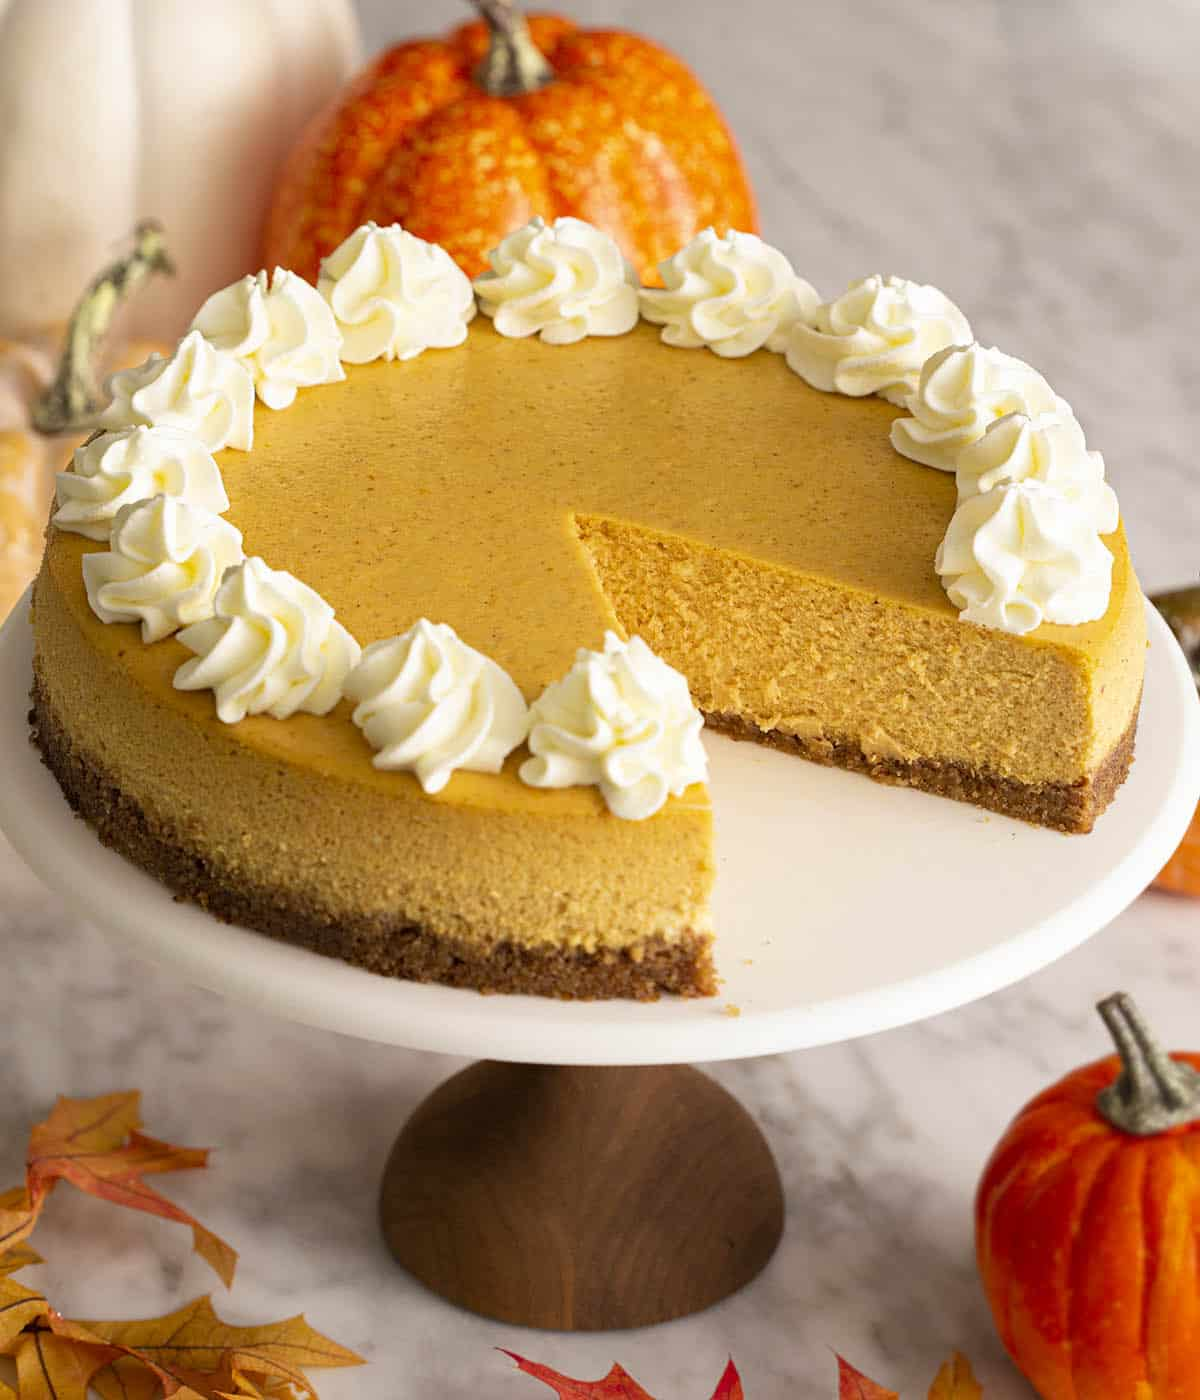 A pumpkin cheesecake on a cake stand with a piece removed.